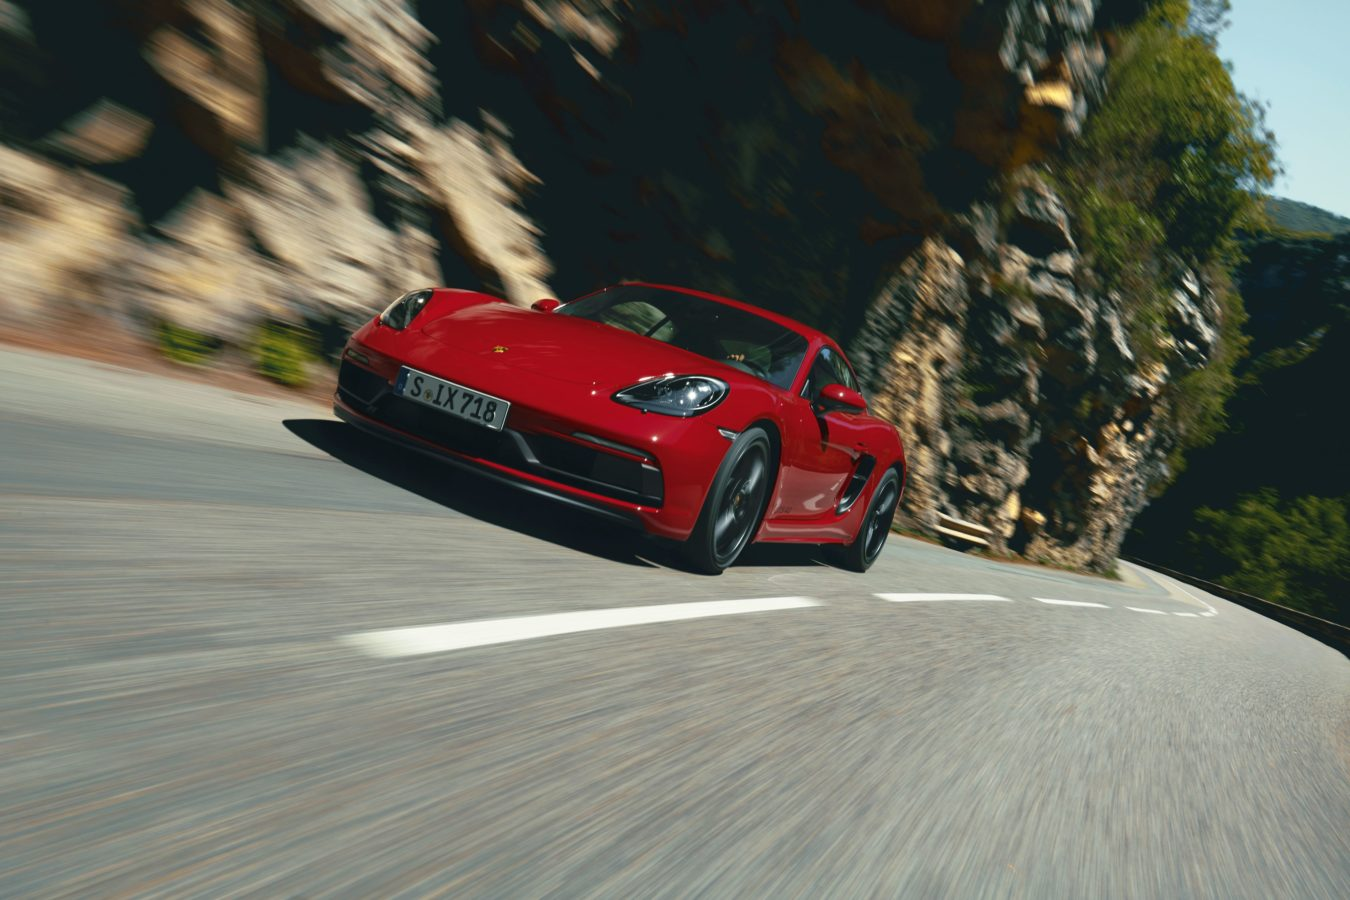 Chasing the Redline with the Porsche 718 Cayman GTS 4.0